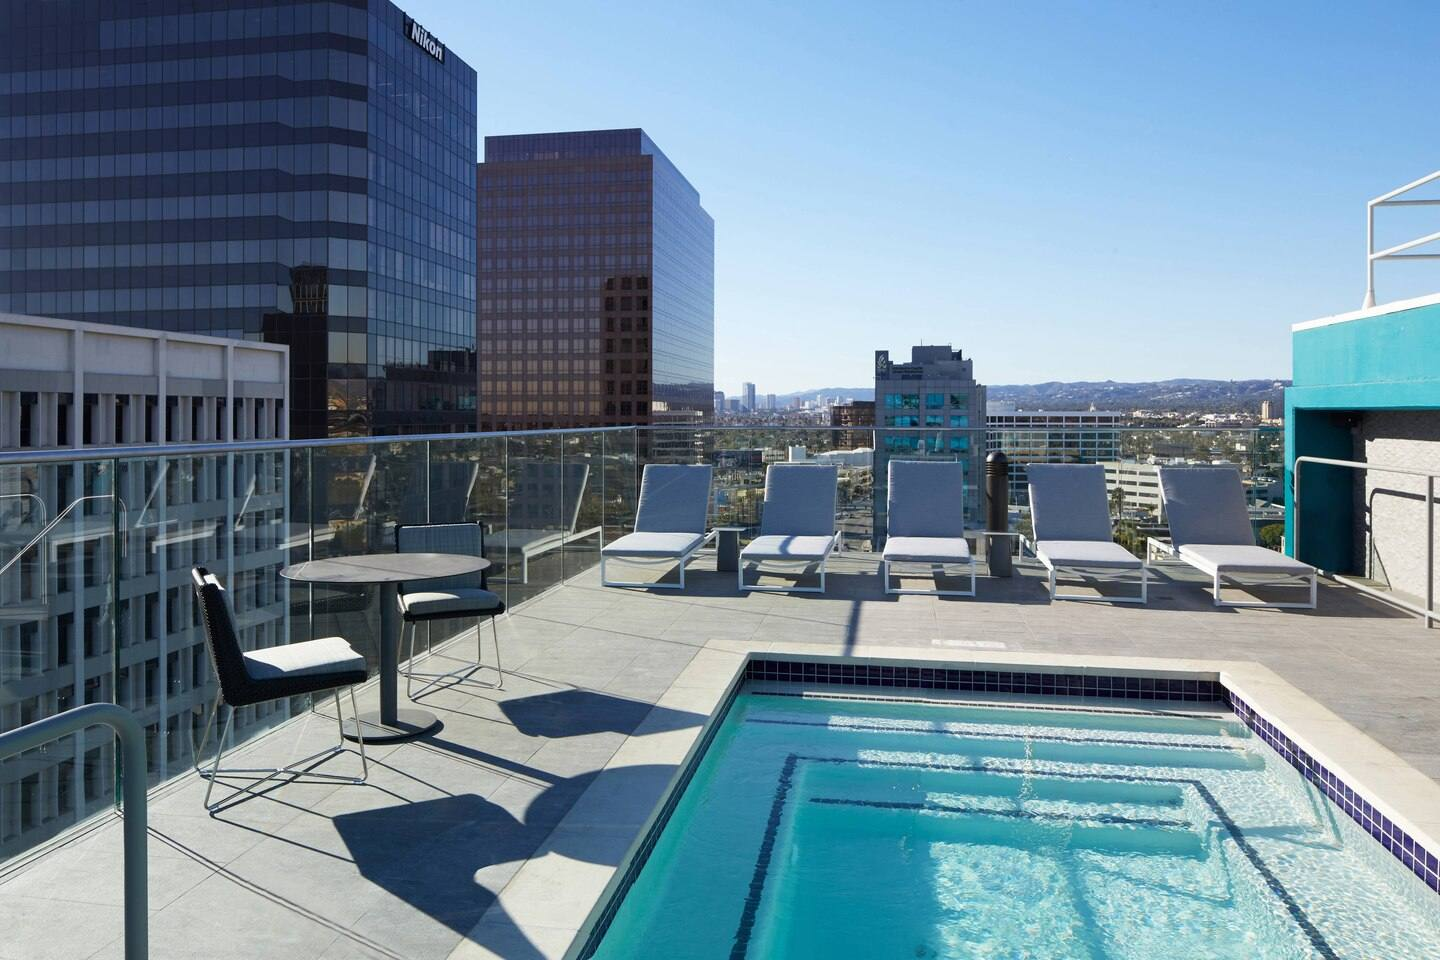 Rooftop wading pool at the AC Hotel Beverly Hills